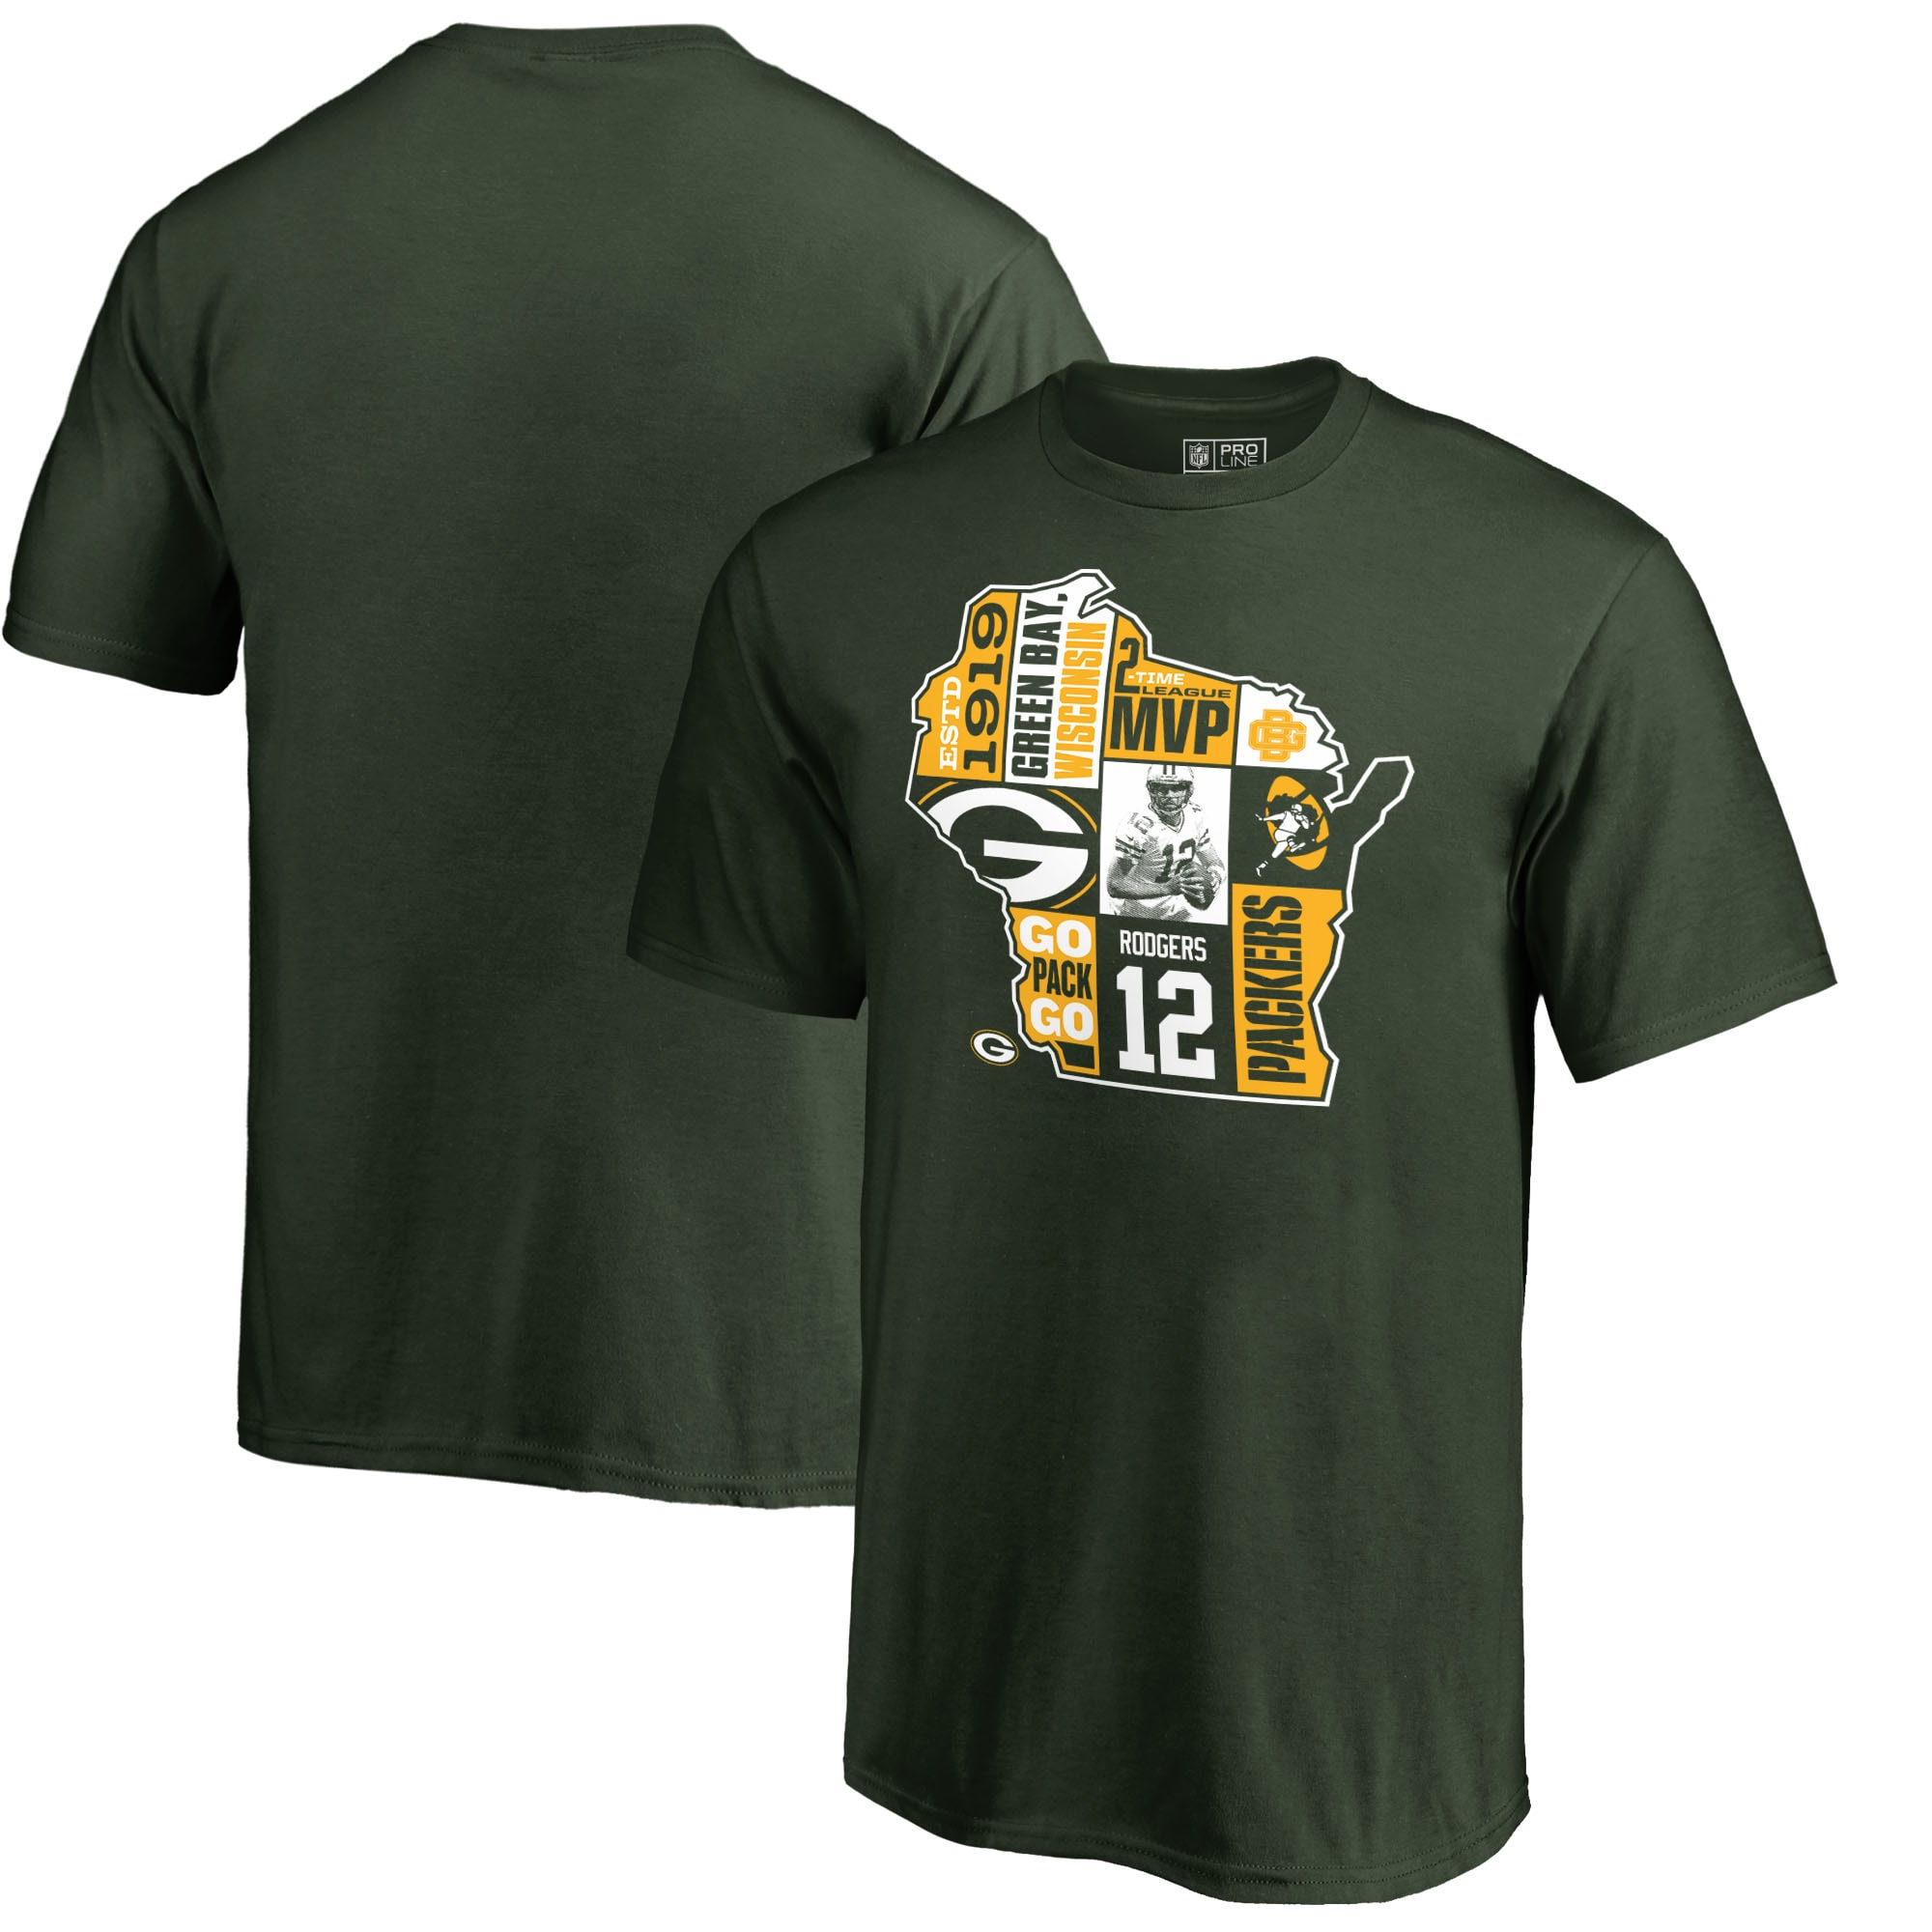 Aaron Rodgers Green Bay Packers NFL Pro Line by Fanatics Branded Youth Player State T-Shirt - Green